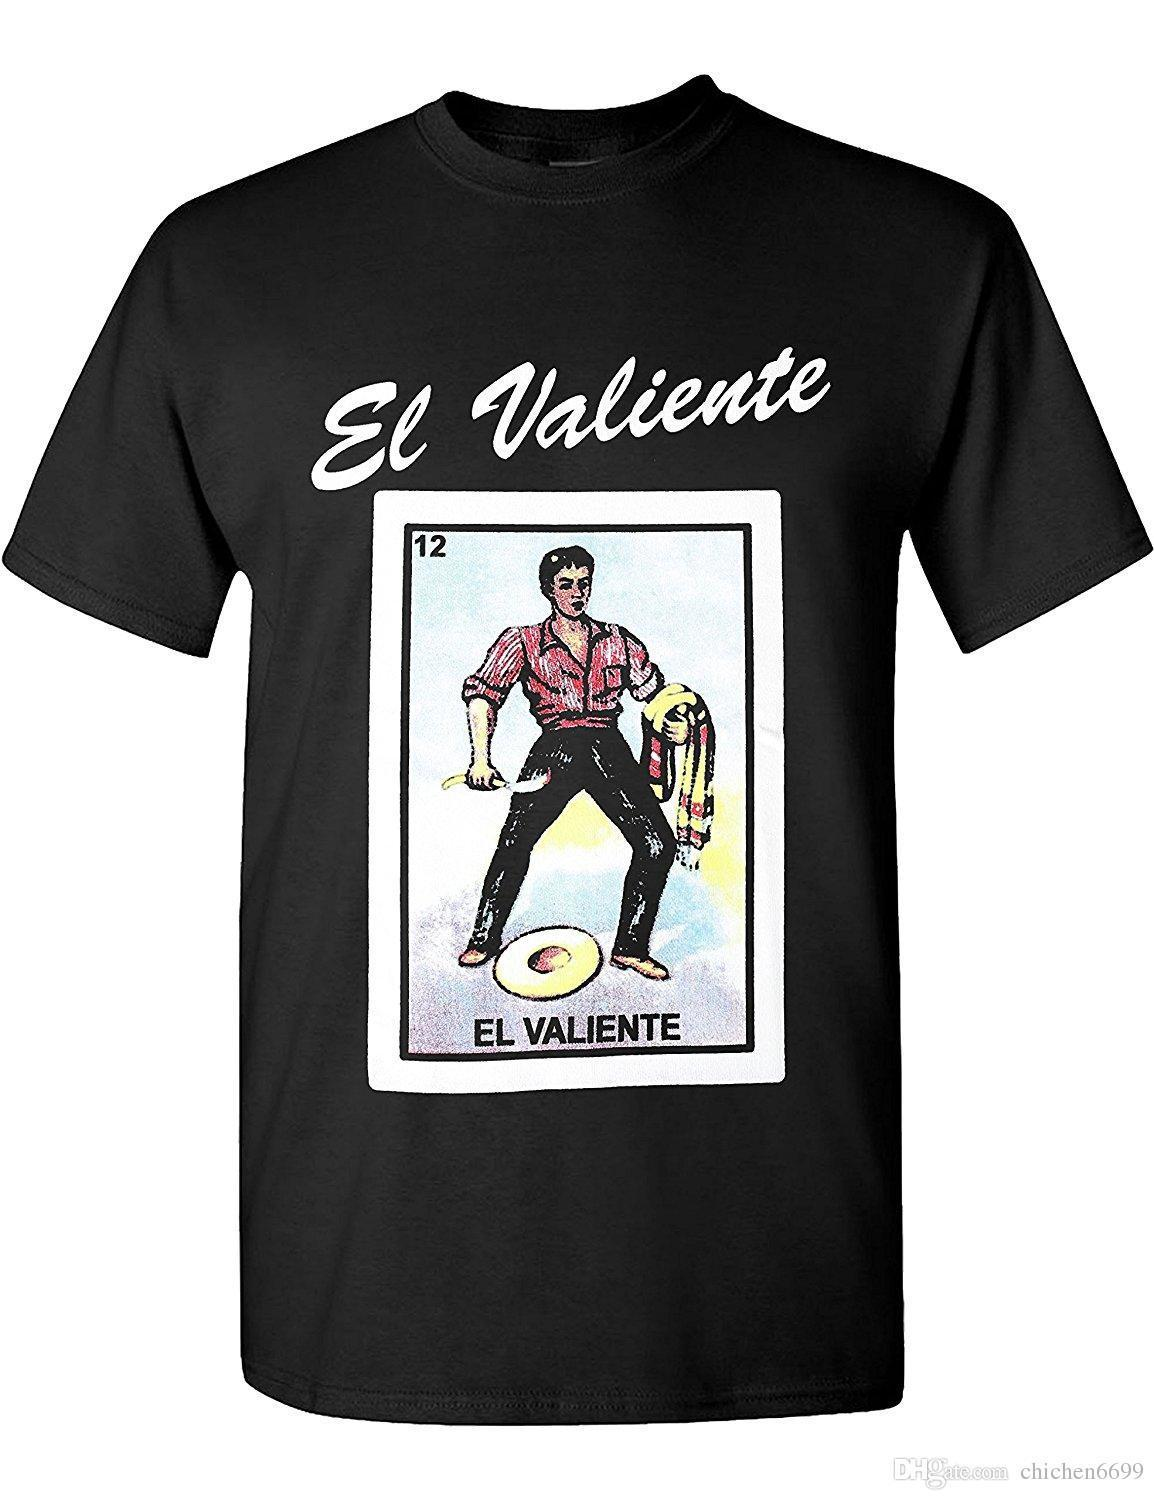 20612a02 Ma Croix Mens Borracho Loteria Graphic Mexican Funny Drinking Card T Shirts  32887357924 Best T Shirts Shirts Online From Jie66, $14.67| DHgate.Com